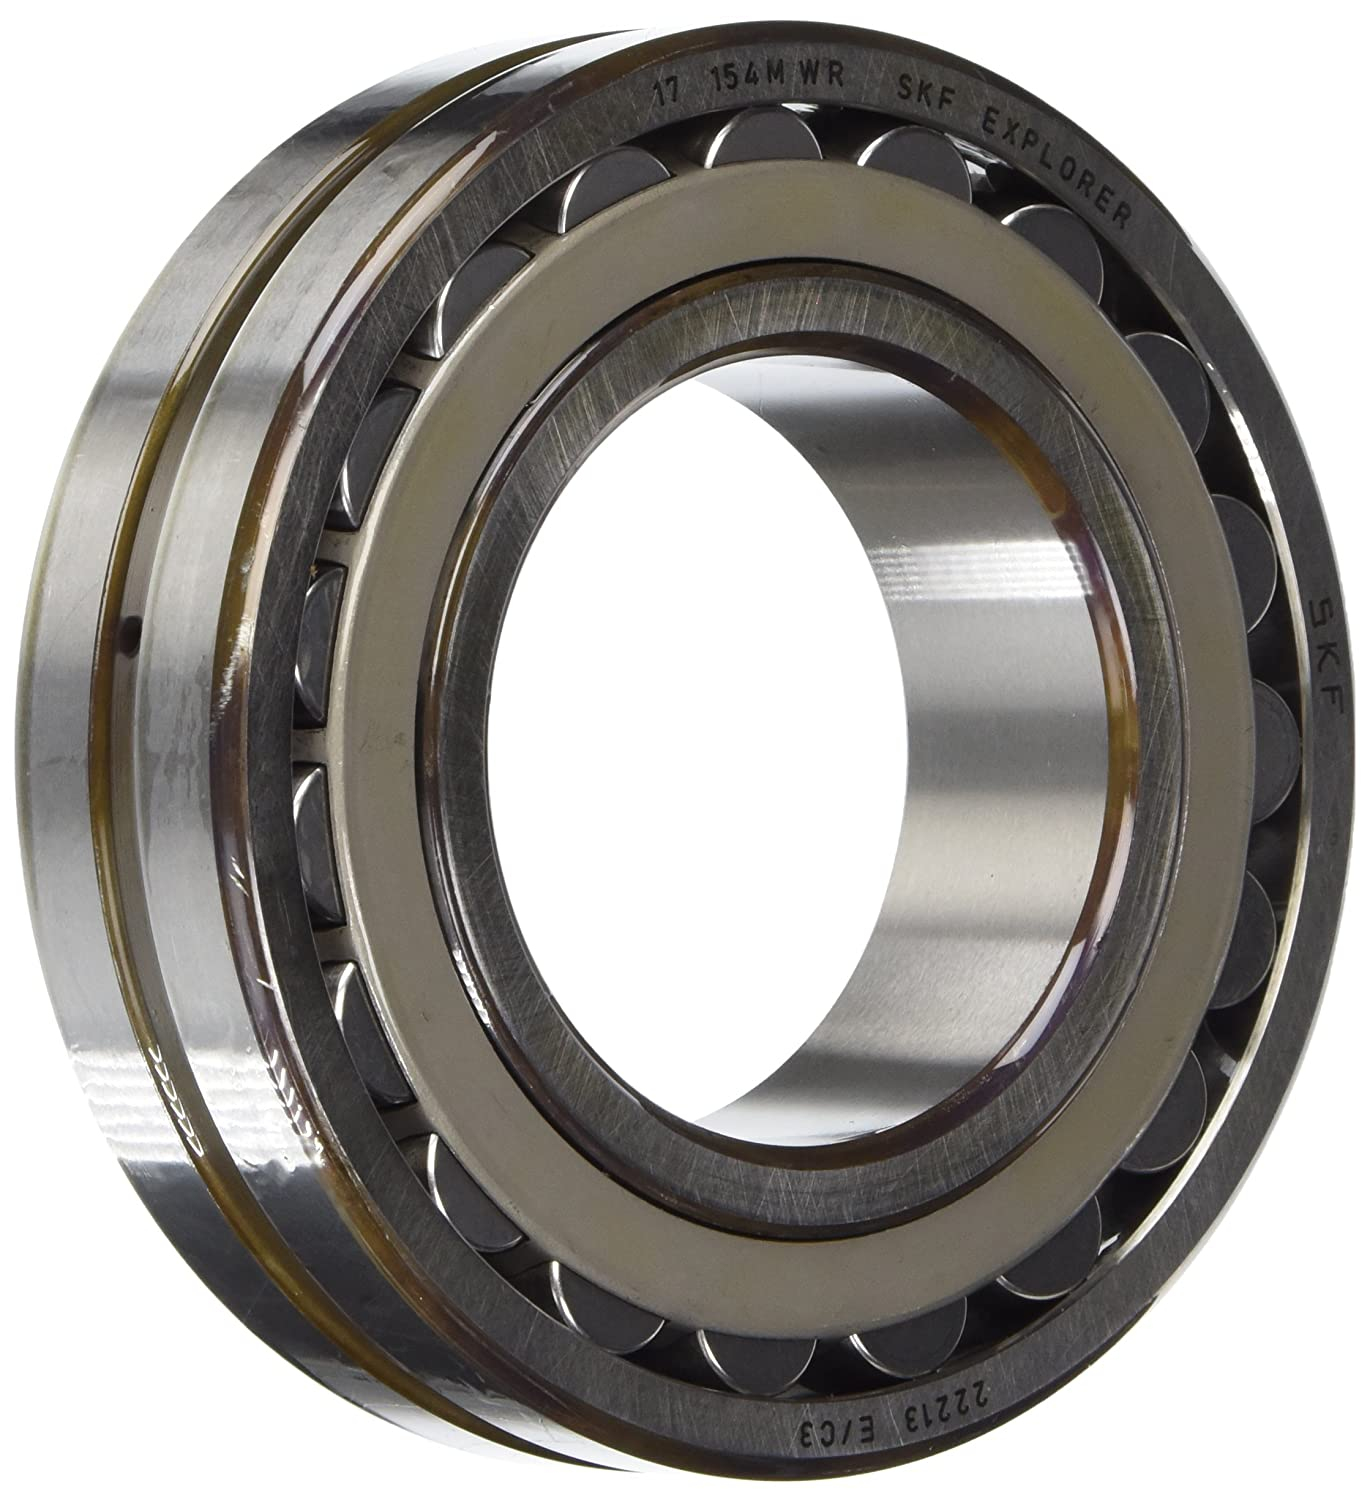 SKF 22213 E/C3 Spherical Radial Bearing, Straight Bore, Unsealed, Steel  Cage, C3 Clearance, 65mm Bore, 120mm OD, 31mm Width, 7000rpm Maximum  Rotational ...